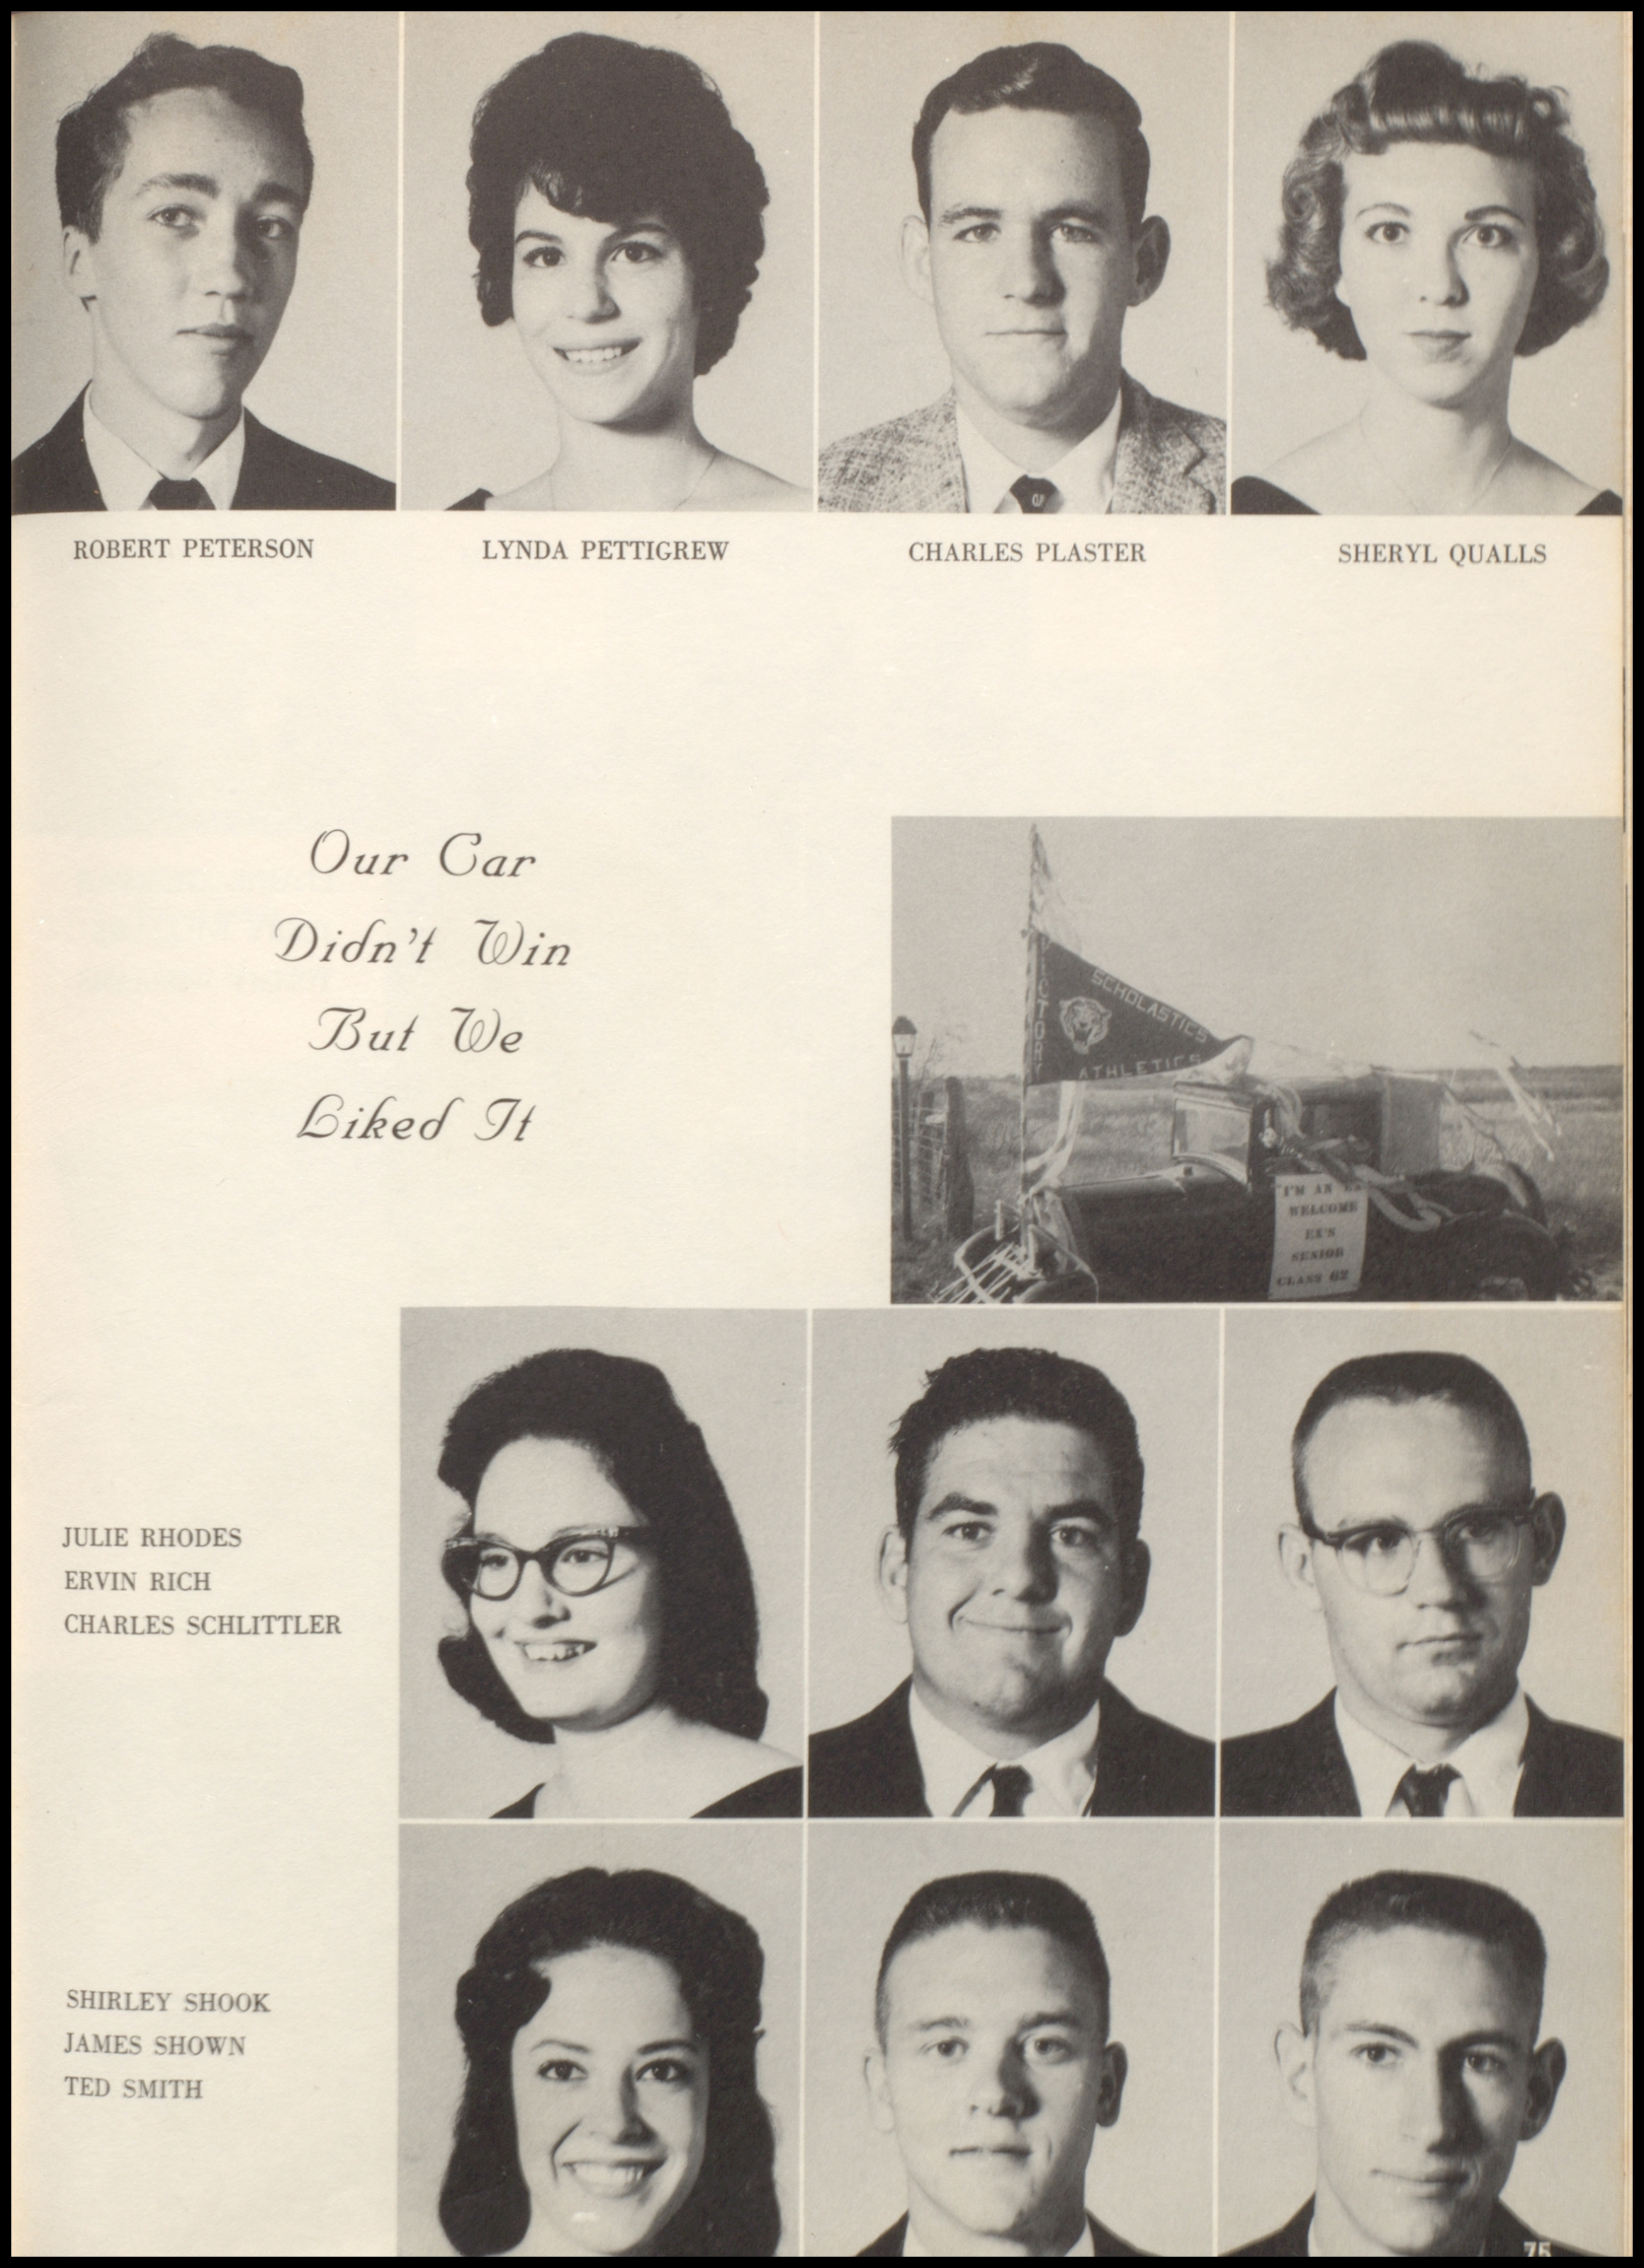 index of s q s for the jacksboro tx high school qualls sheryl senior picture 1962 0079